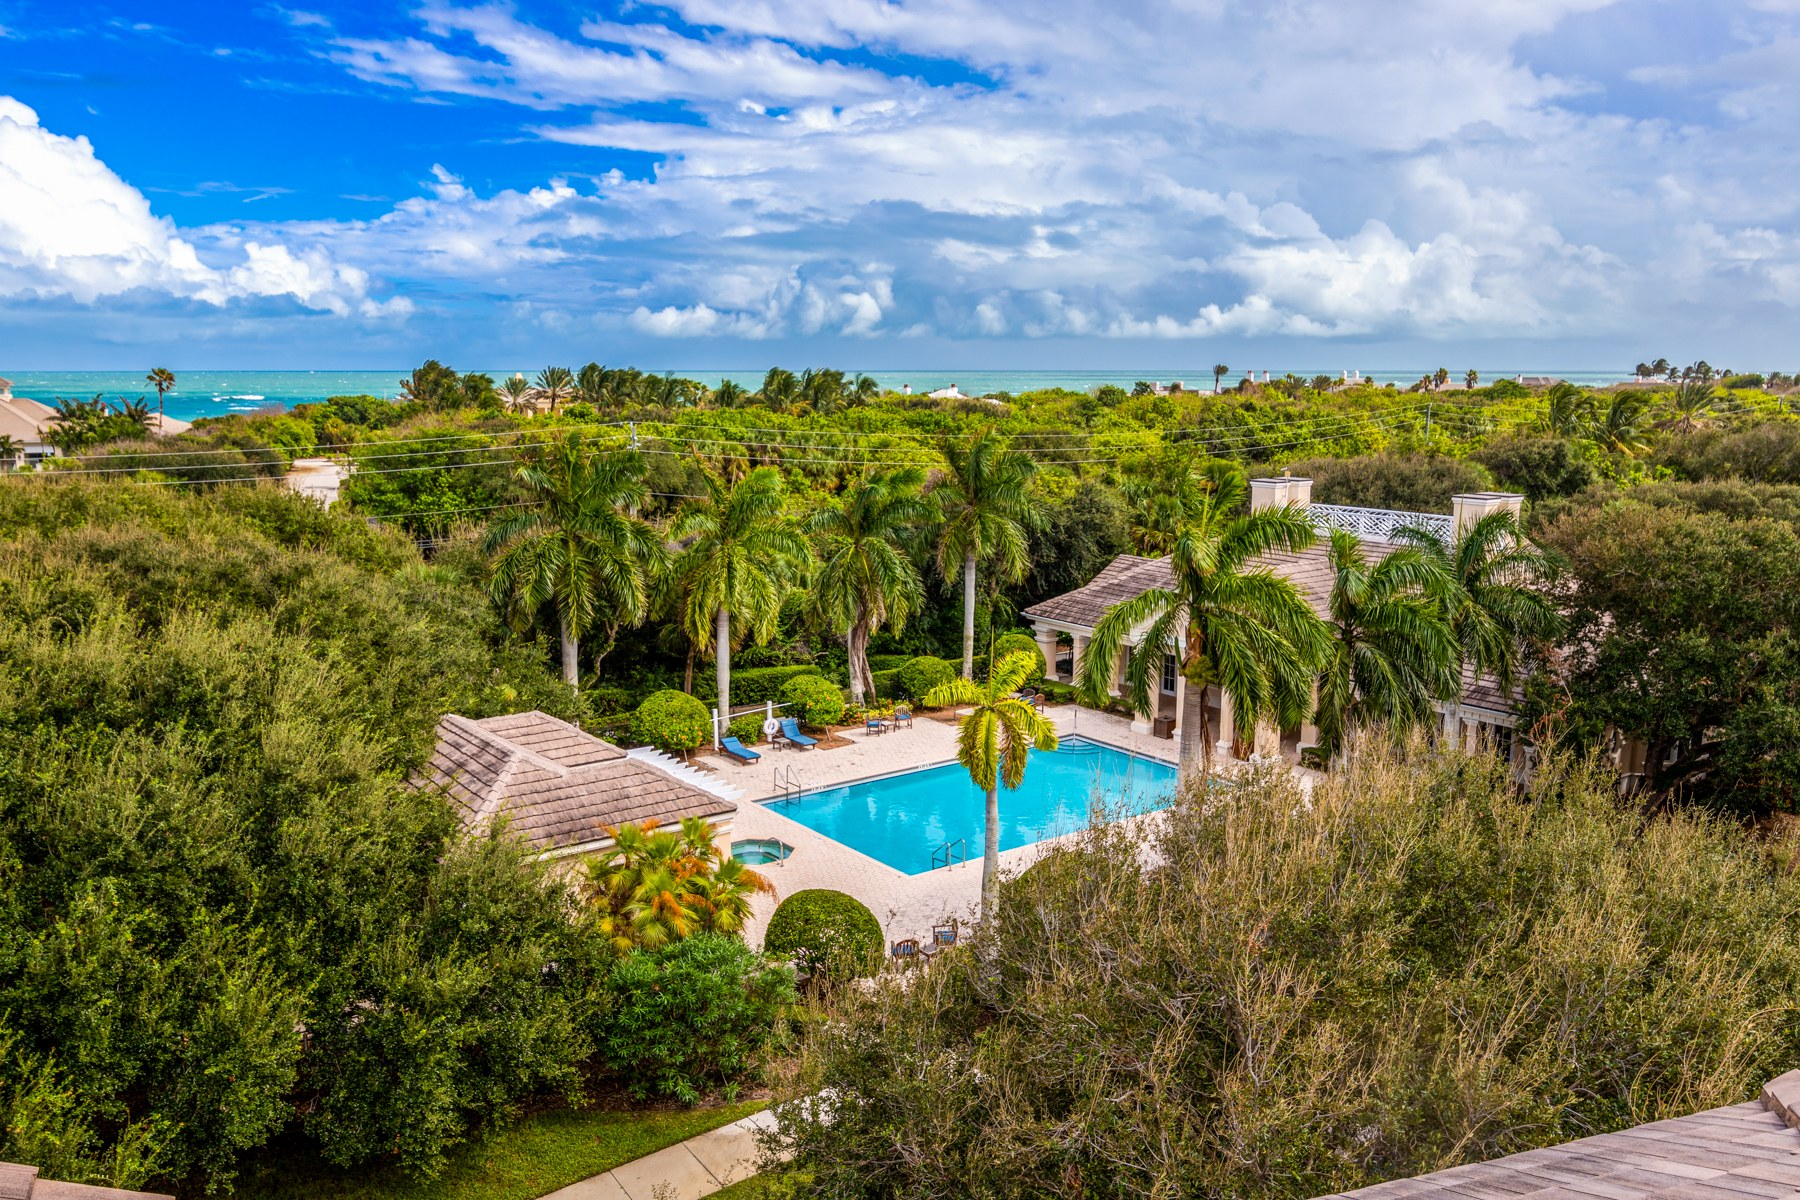 Property のために 売買 アット 900 River Club Drive & Highway A1 A, Vero Beach, FL 900 River Club Drive & Highway A1 A Vero Beach, フロリダ 32963 アメリカ